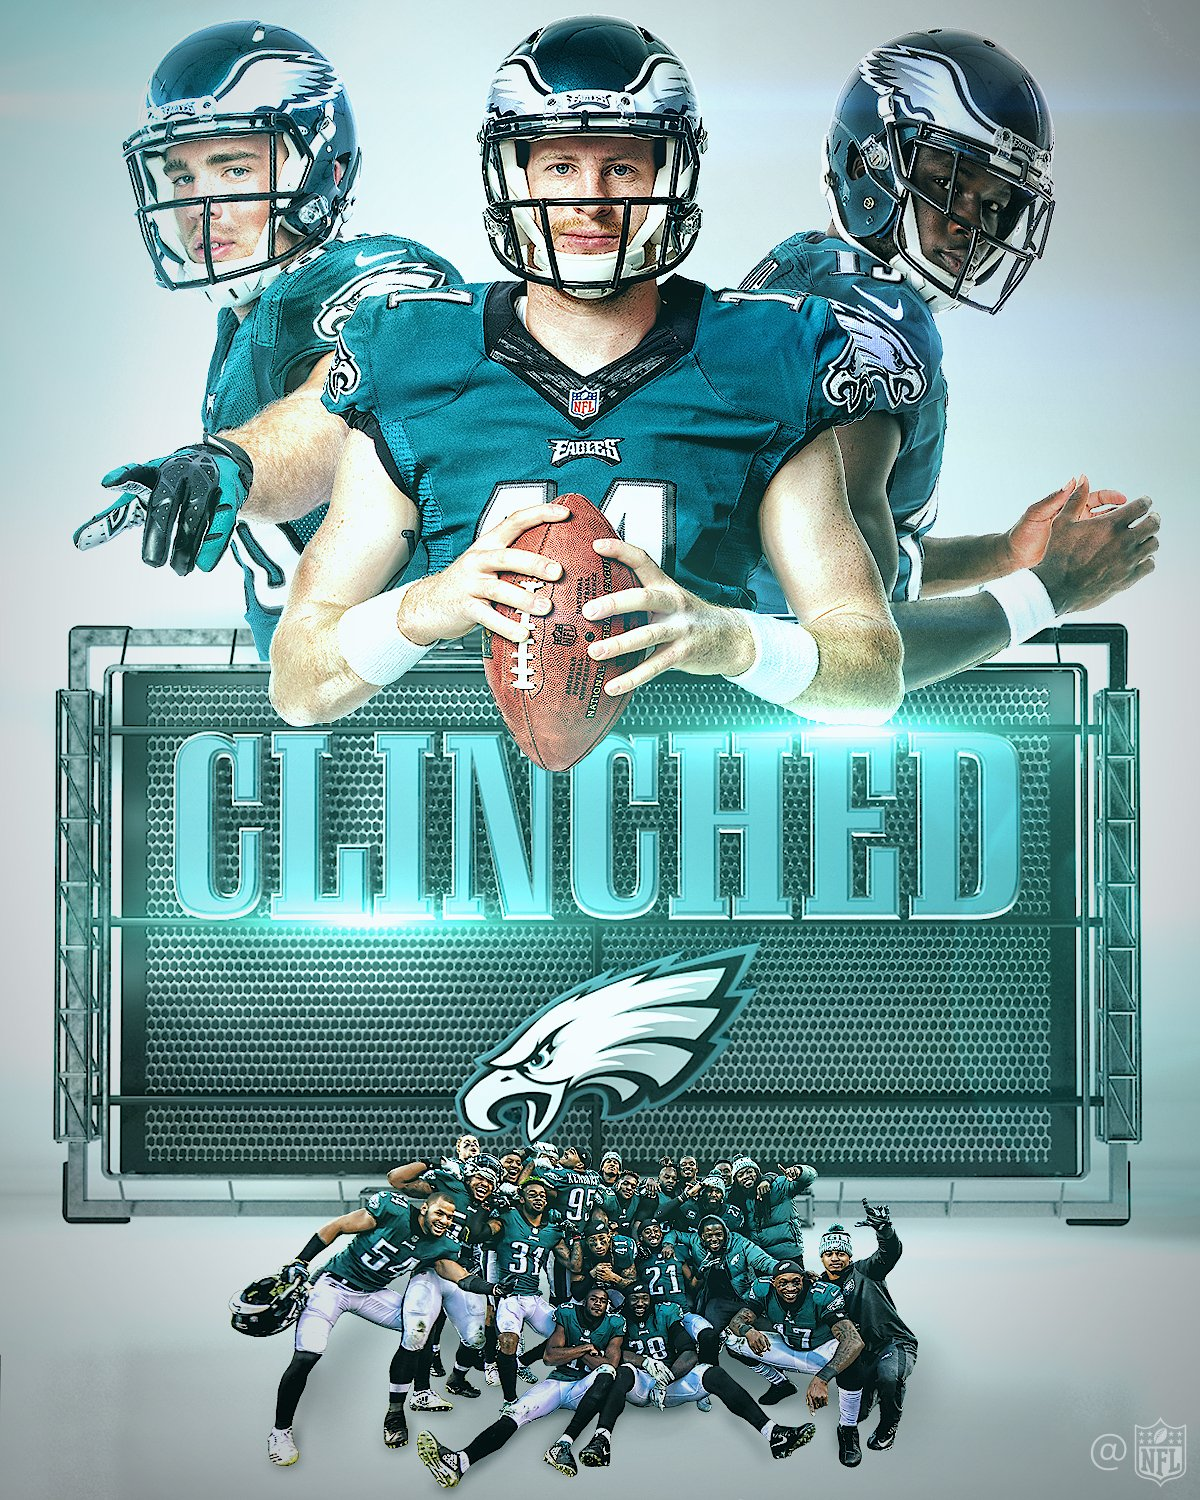 The @Eagles have clinched the NFC East and are heading to the playoffs!  #FlyEaglesFly https://t.co/5AxncEMrgH